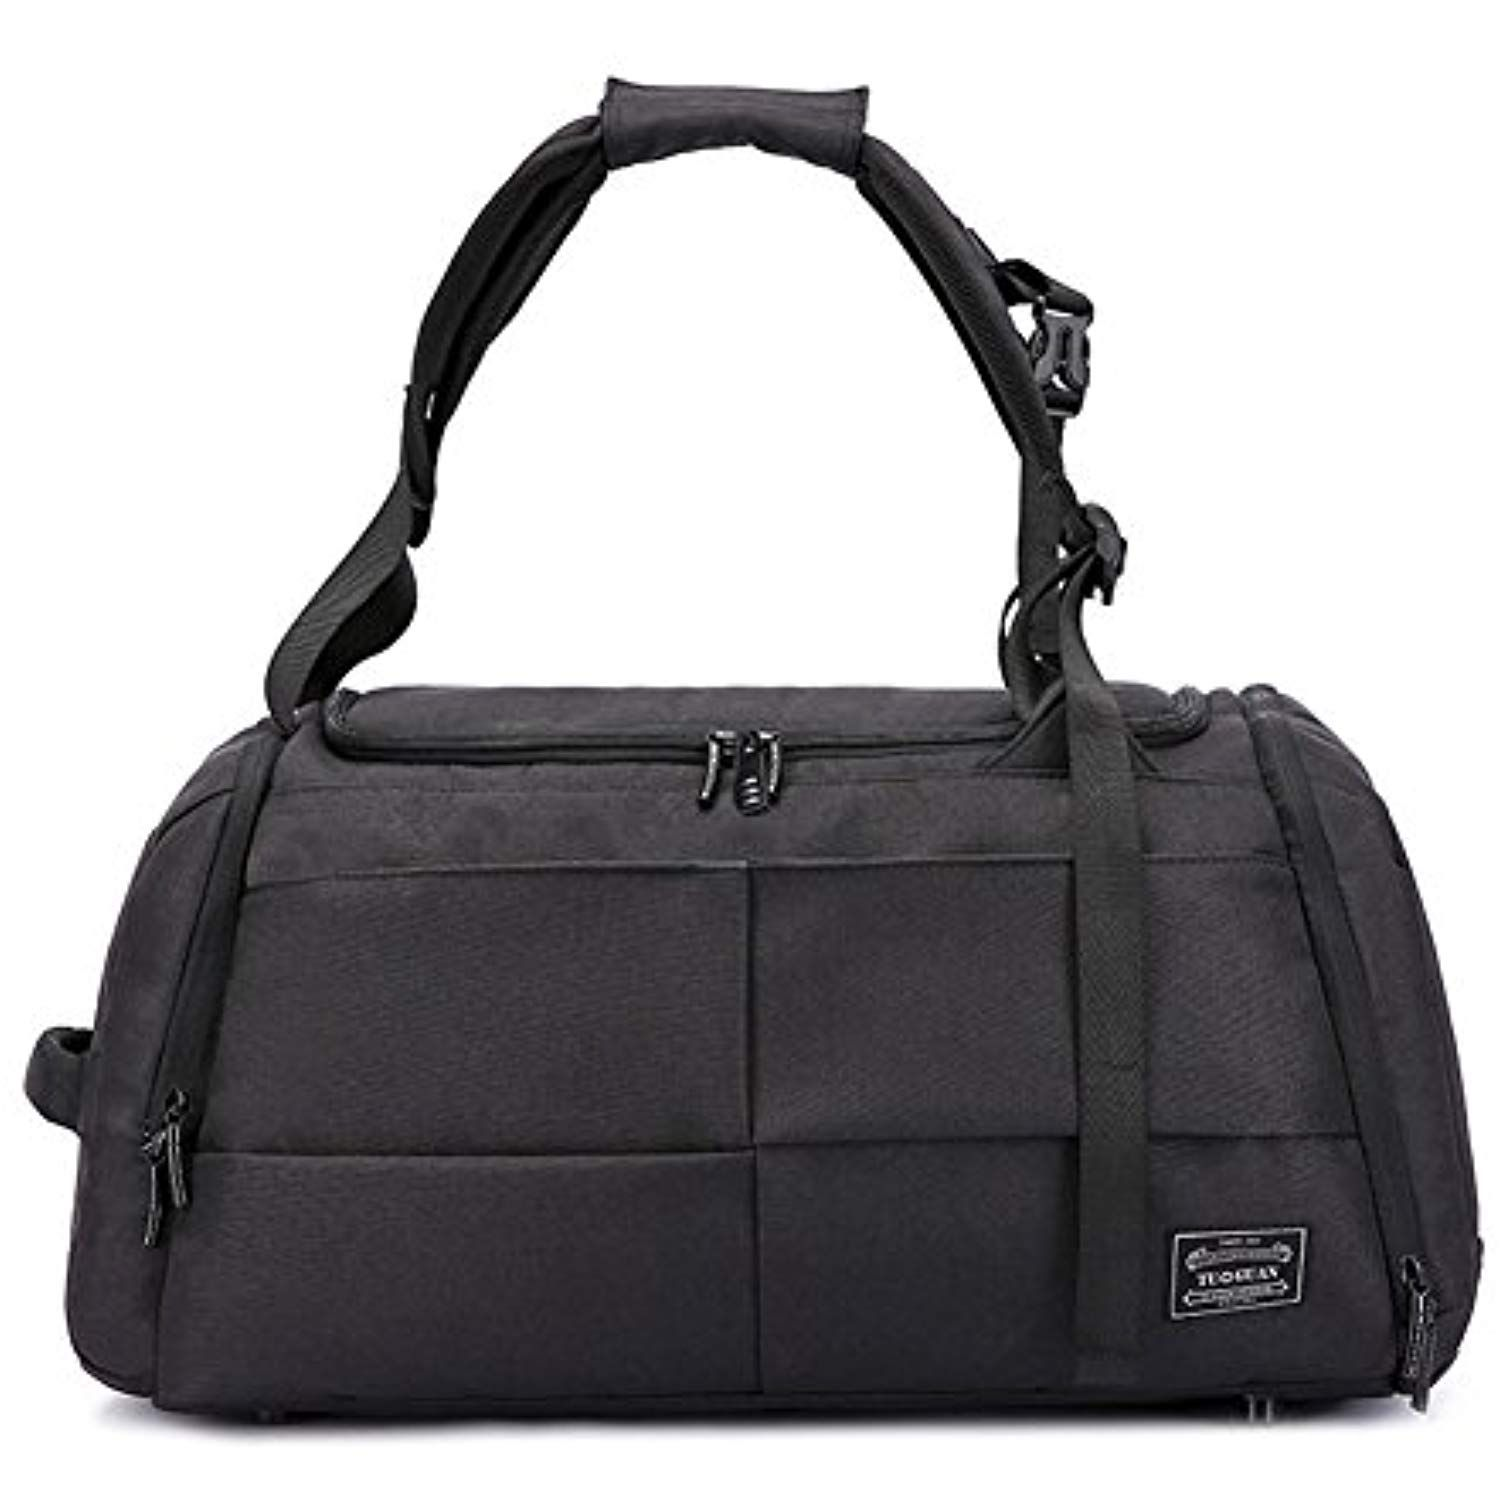 a176a32a9ed8 HaloVa Gym Bag, Large Retro Sports Duffel Tote Backpack with Shoes ...